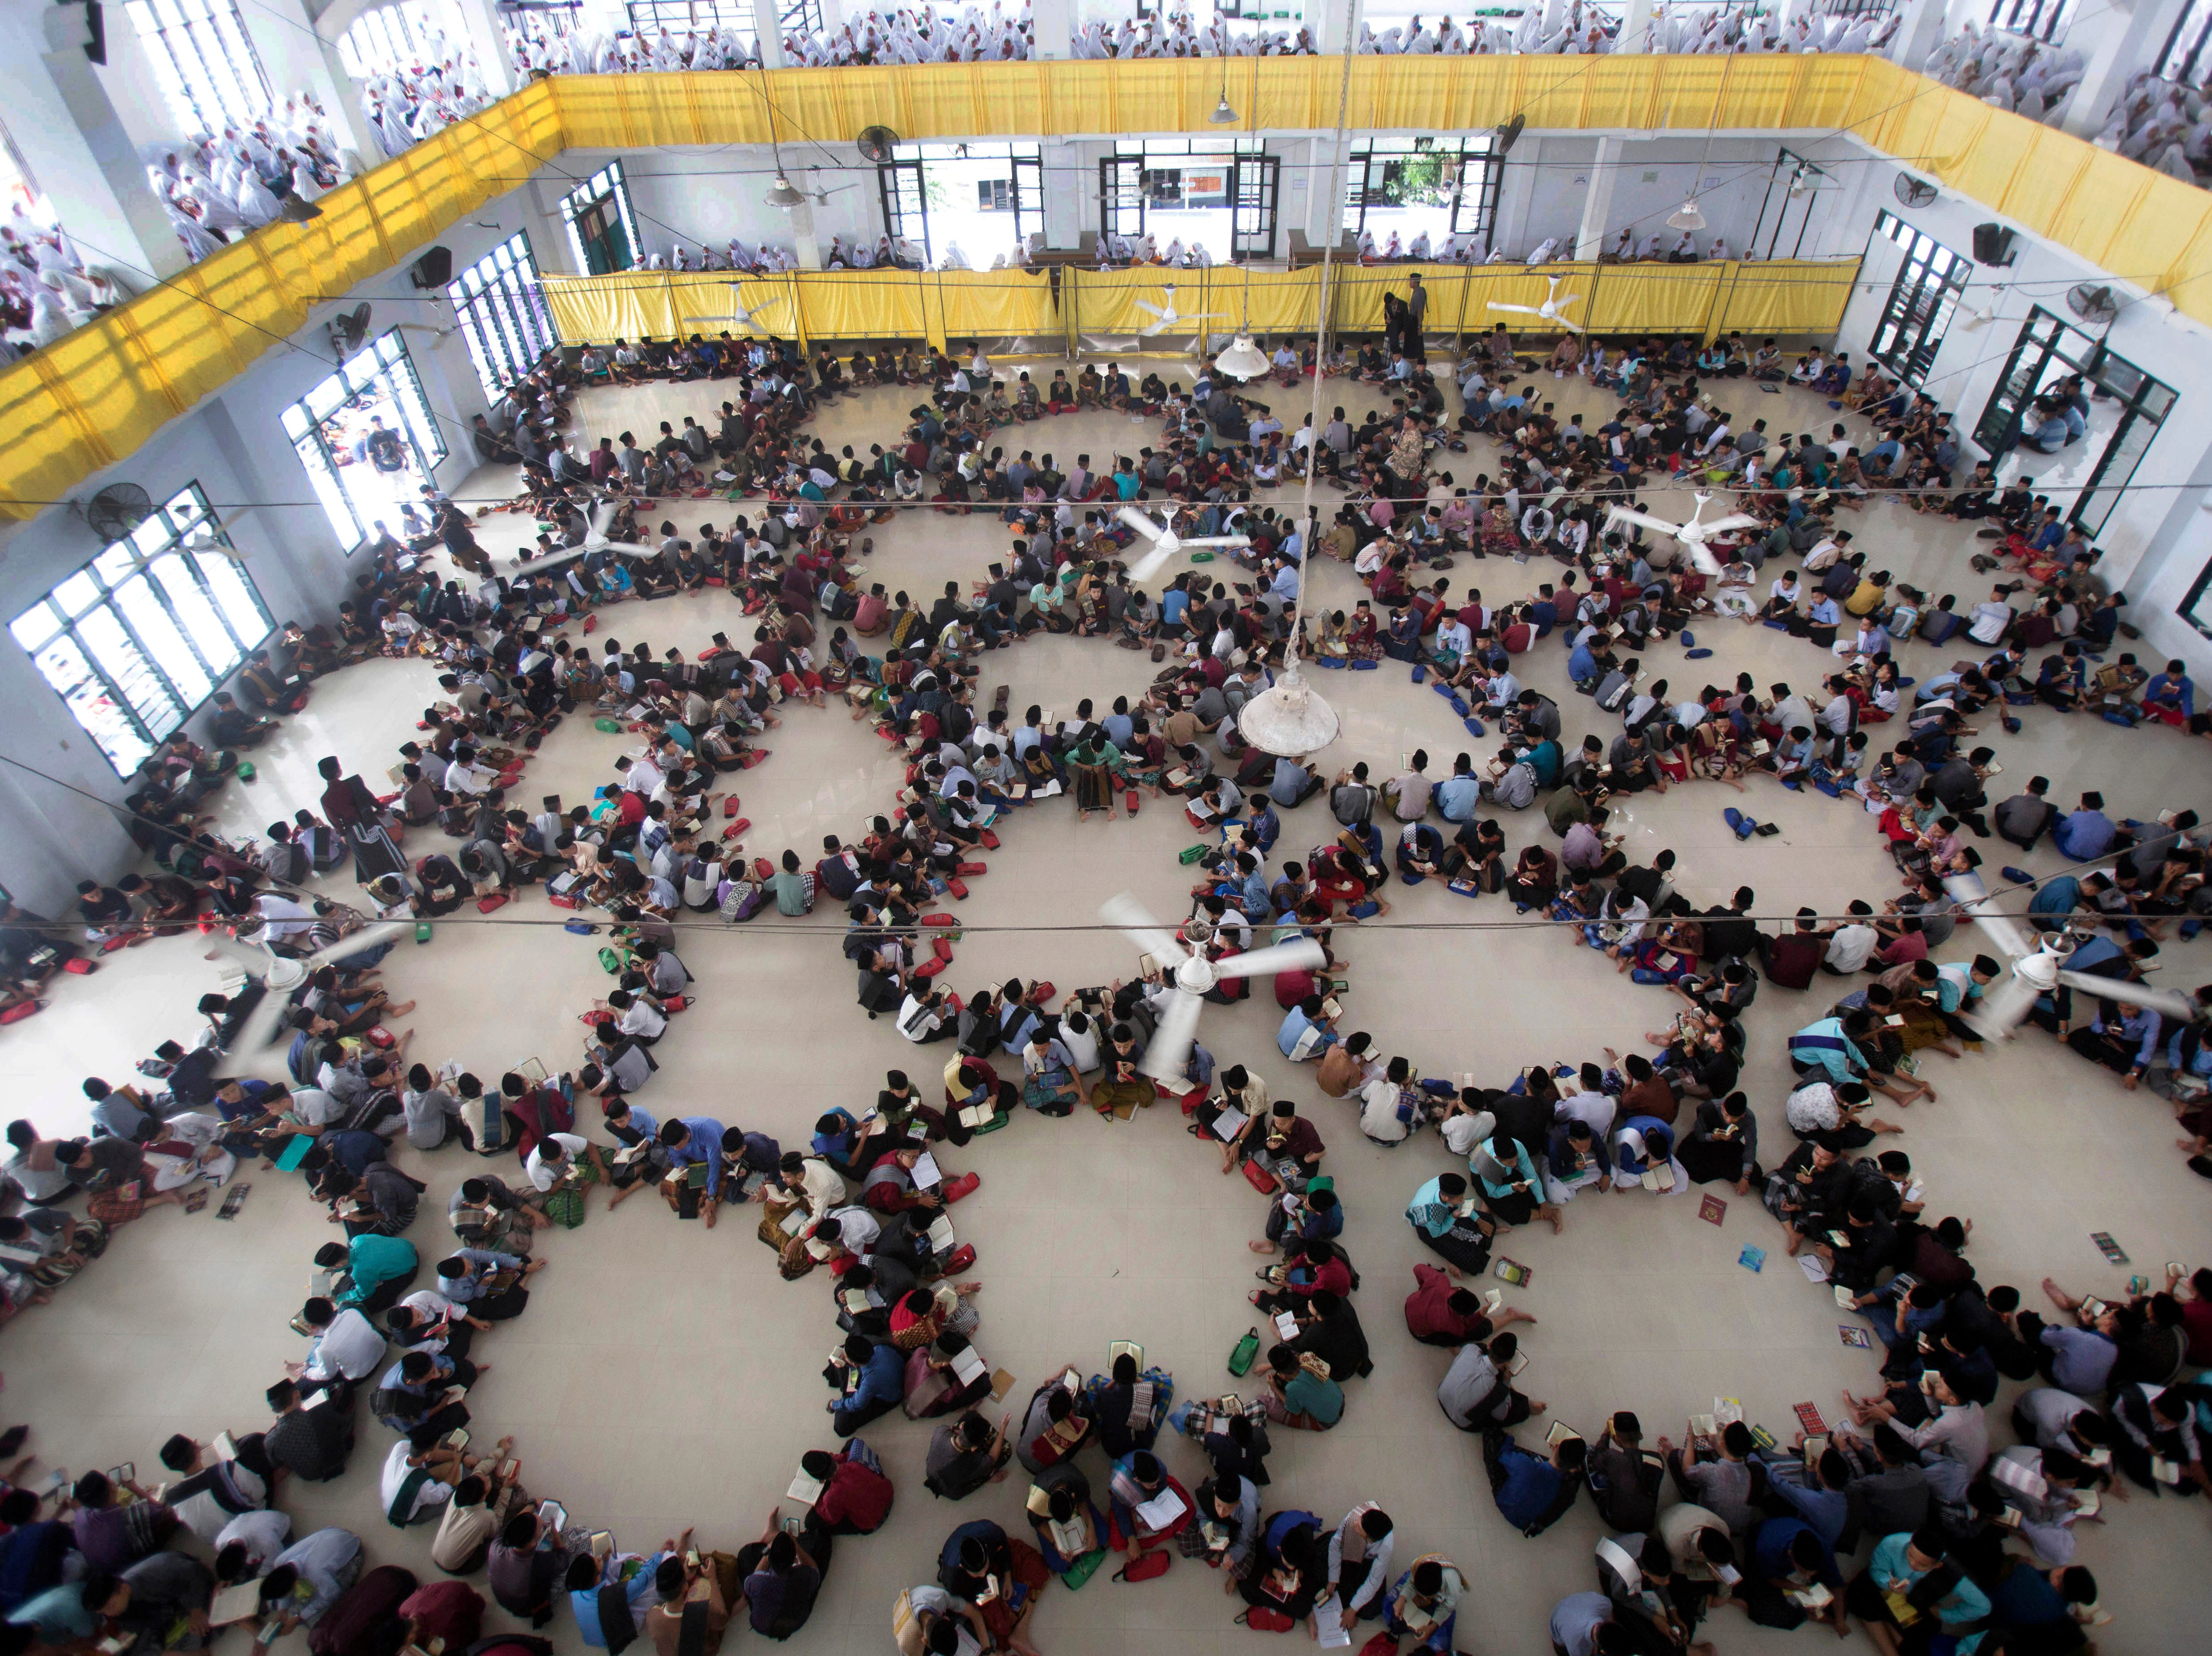 Students sit in circles as they attend a Quran recital class during the first day of the holy fasting month of Ramadan at Ar-Raudlatul Hasanah Islamic Boarding School in Medan, North Sumatra, Indonesia, Monday, May 6, 2019. Muslims around the world marked the start of Ramadan on Monday, a month of intense prayer, dawn-to-dusk fasting and nightly feasts.